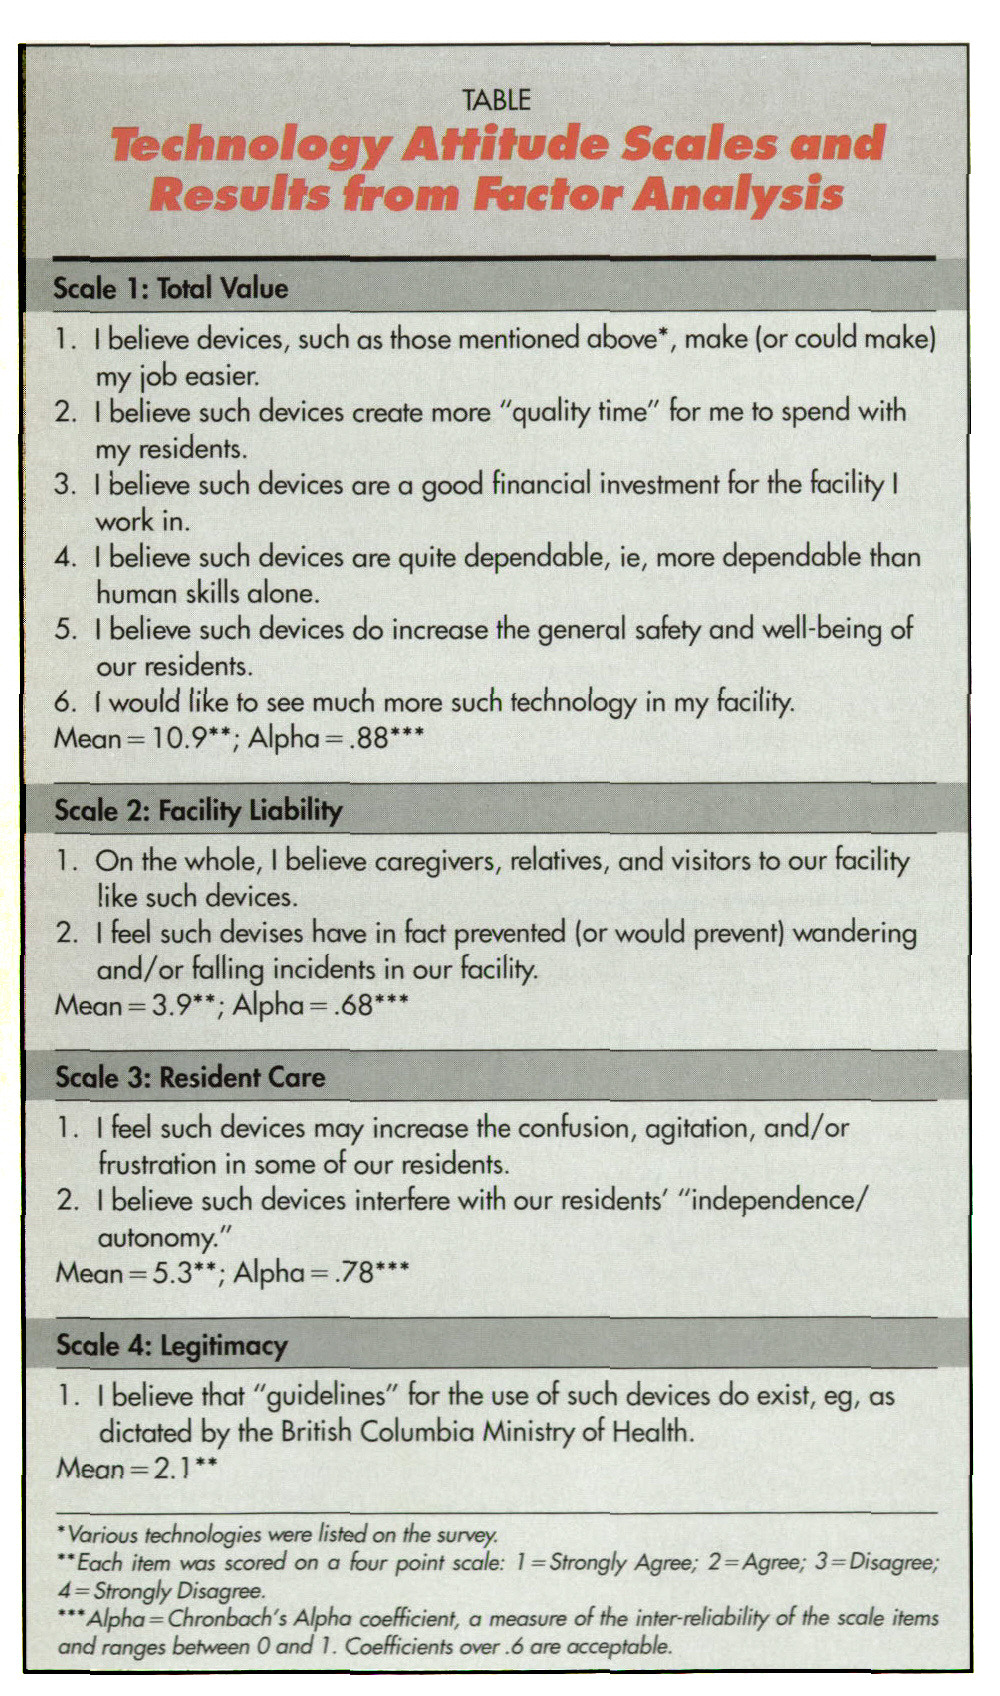 TABLETechnology Attitude Scales and Results from Factor Analysis